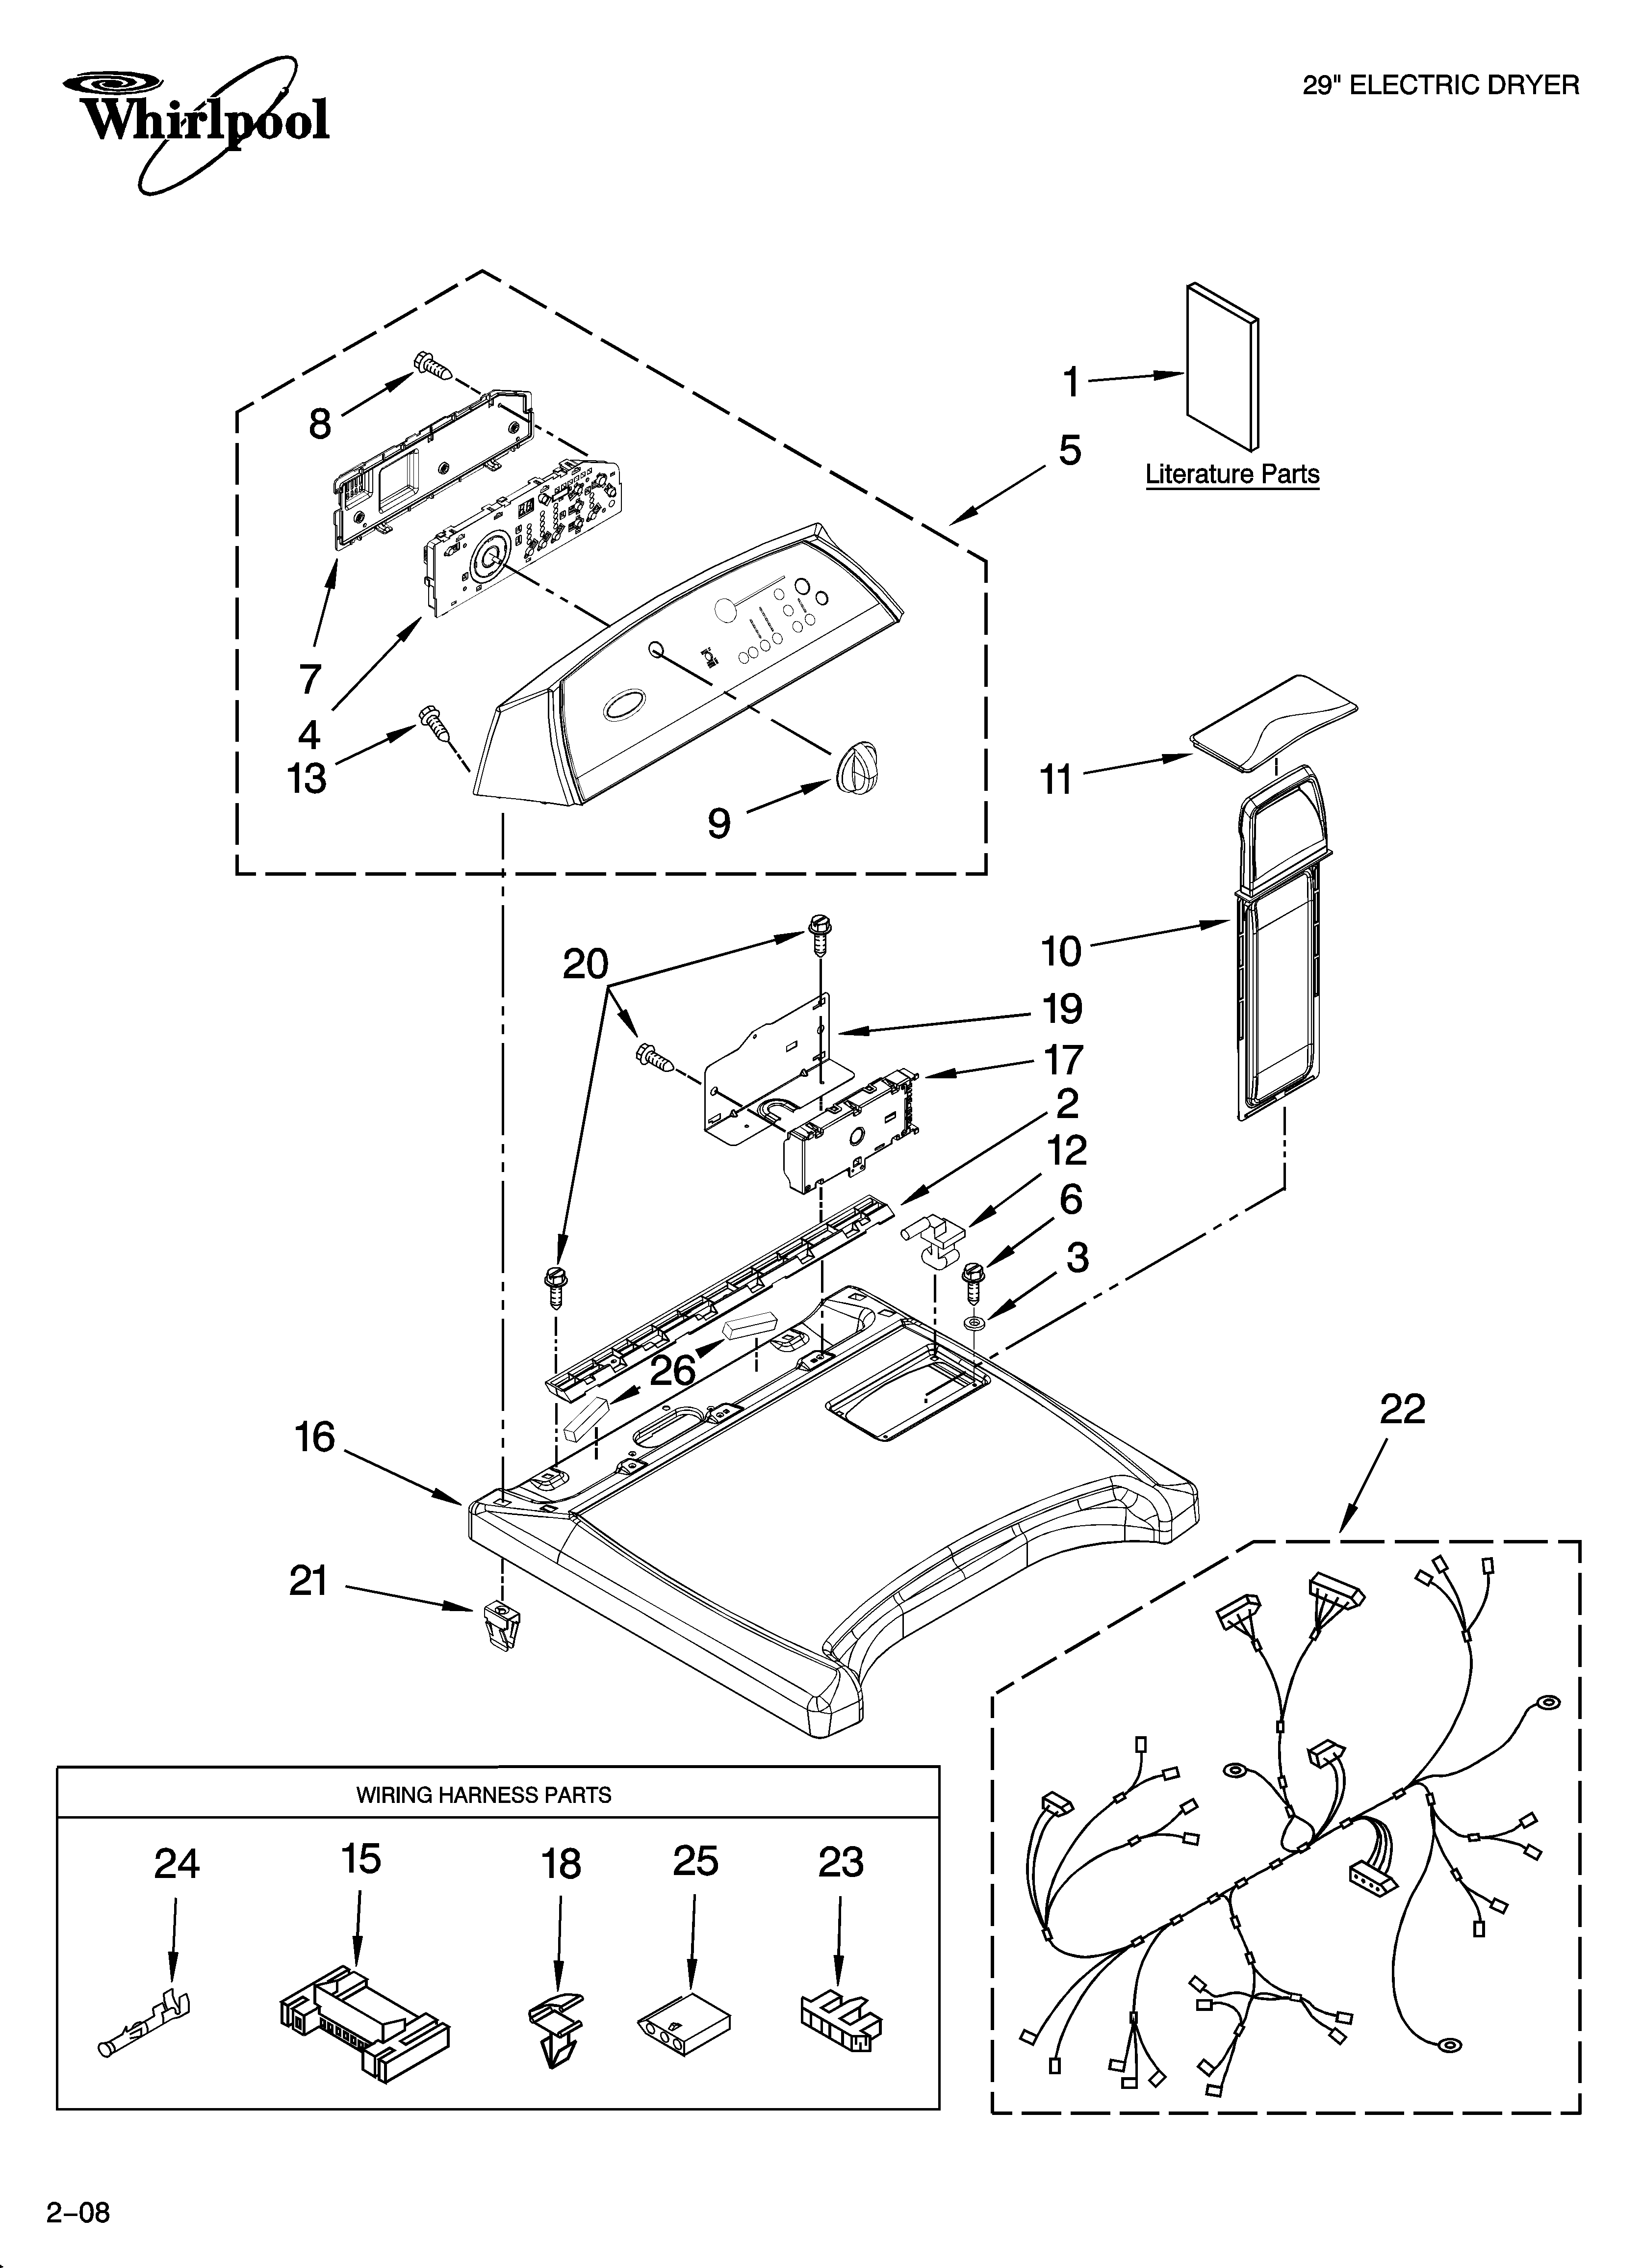 Whirlpool WED6600VW0 top and console parts diagram